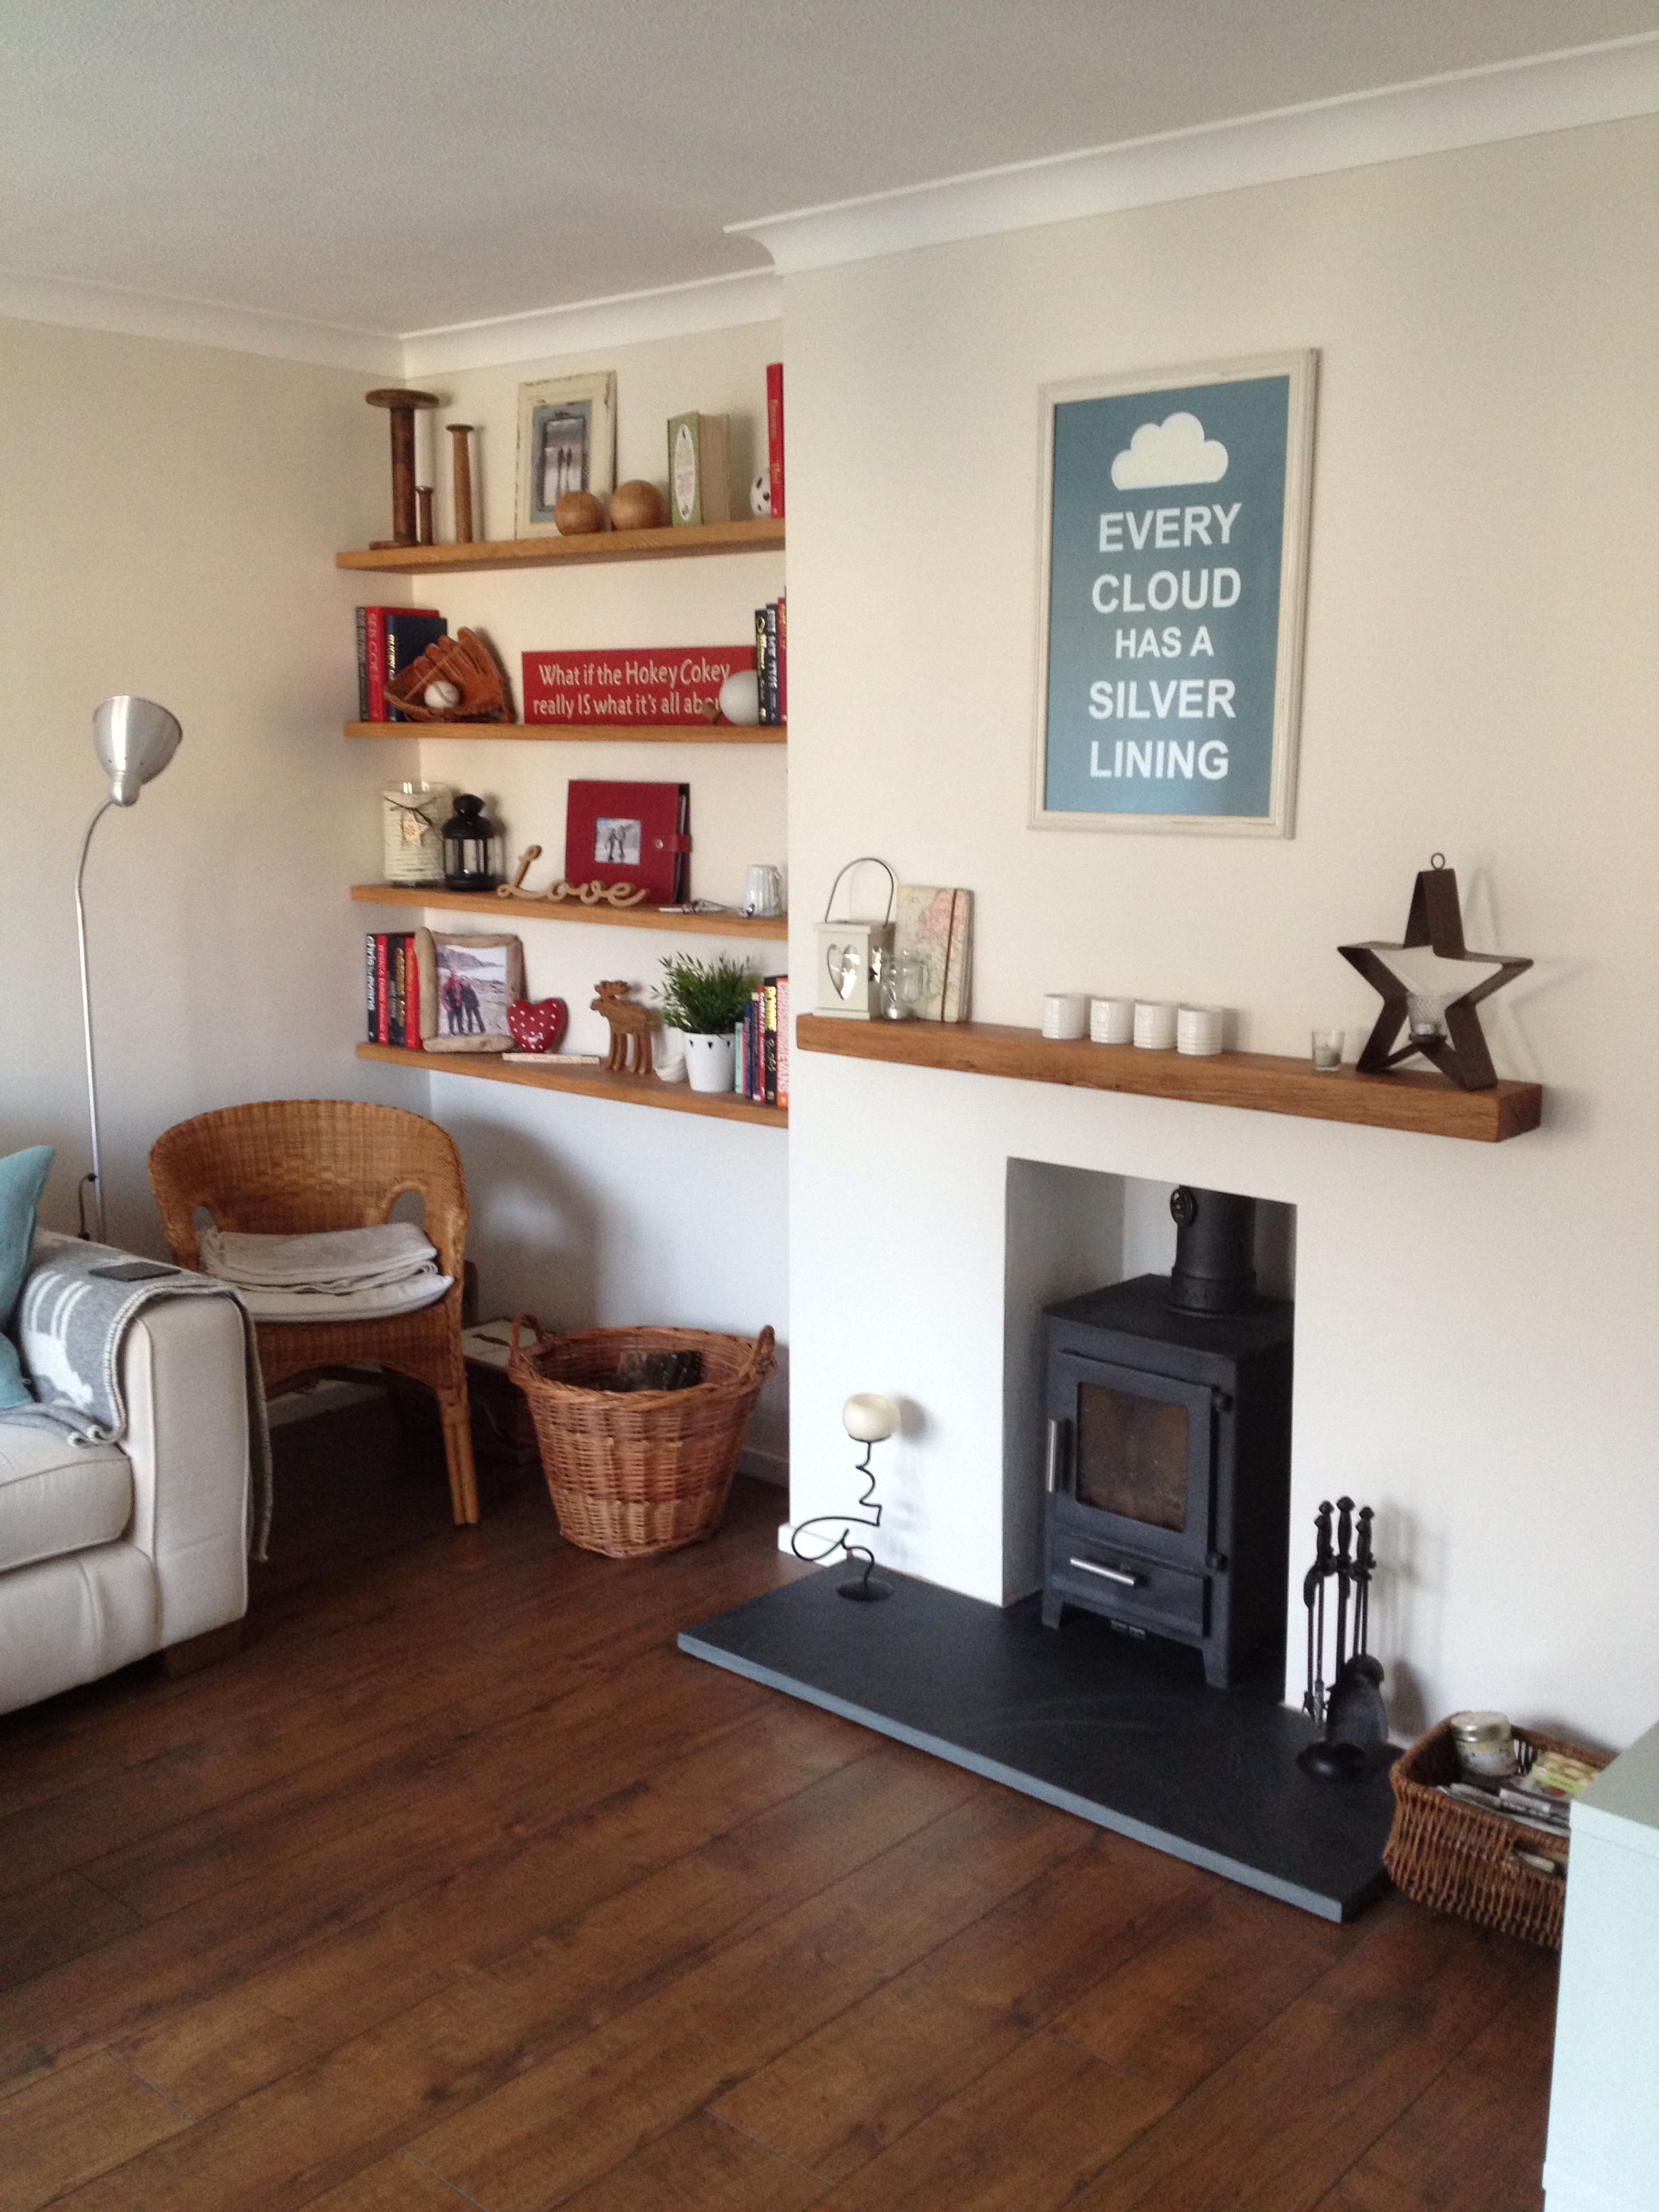 eclectic living room with oak floating shelves and log burner nice fireplace cosy stick wall mirrors single standing shelf for sky box dvd player glass hardware brackets metal